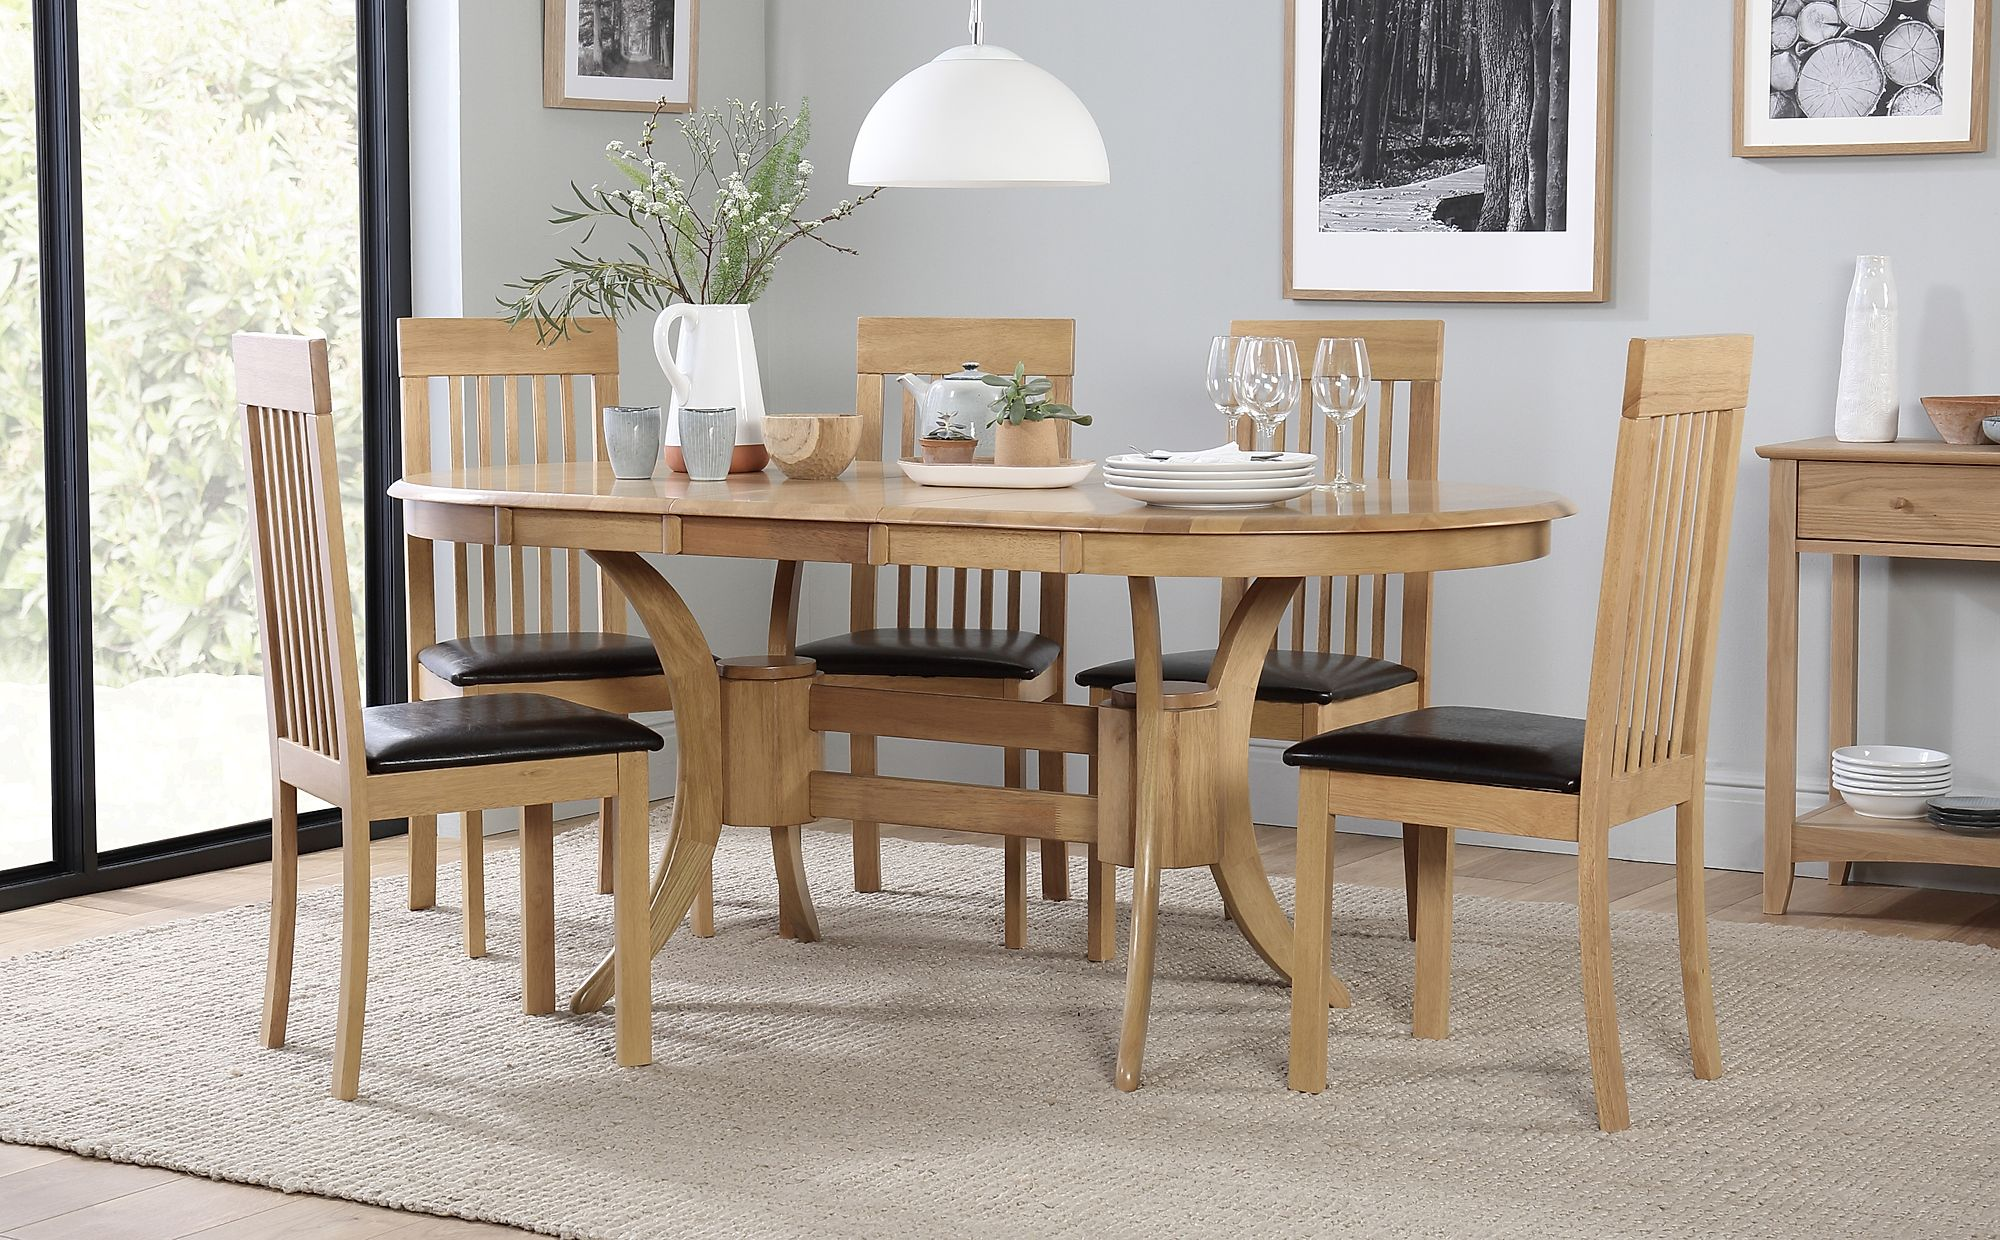 Townhouse Oval Oak Extending Dining Table with 6 Oxford ...